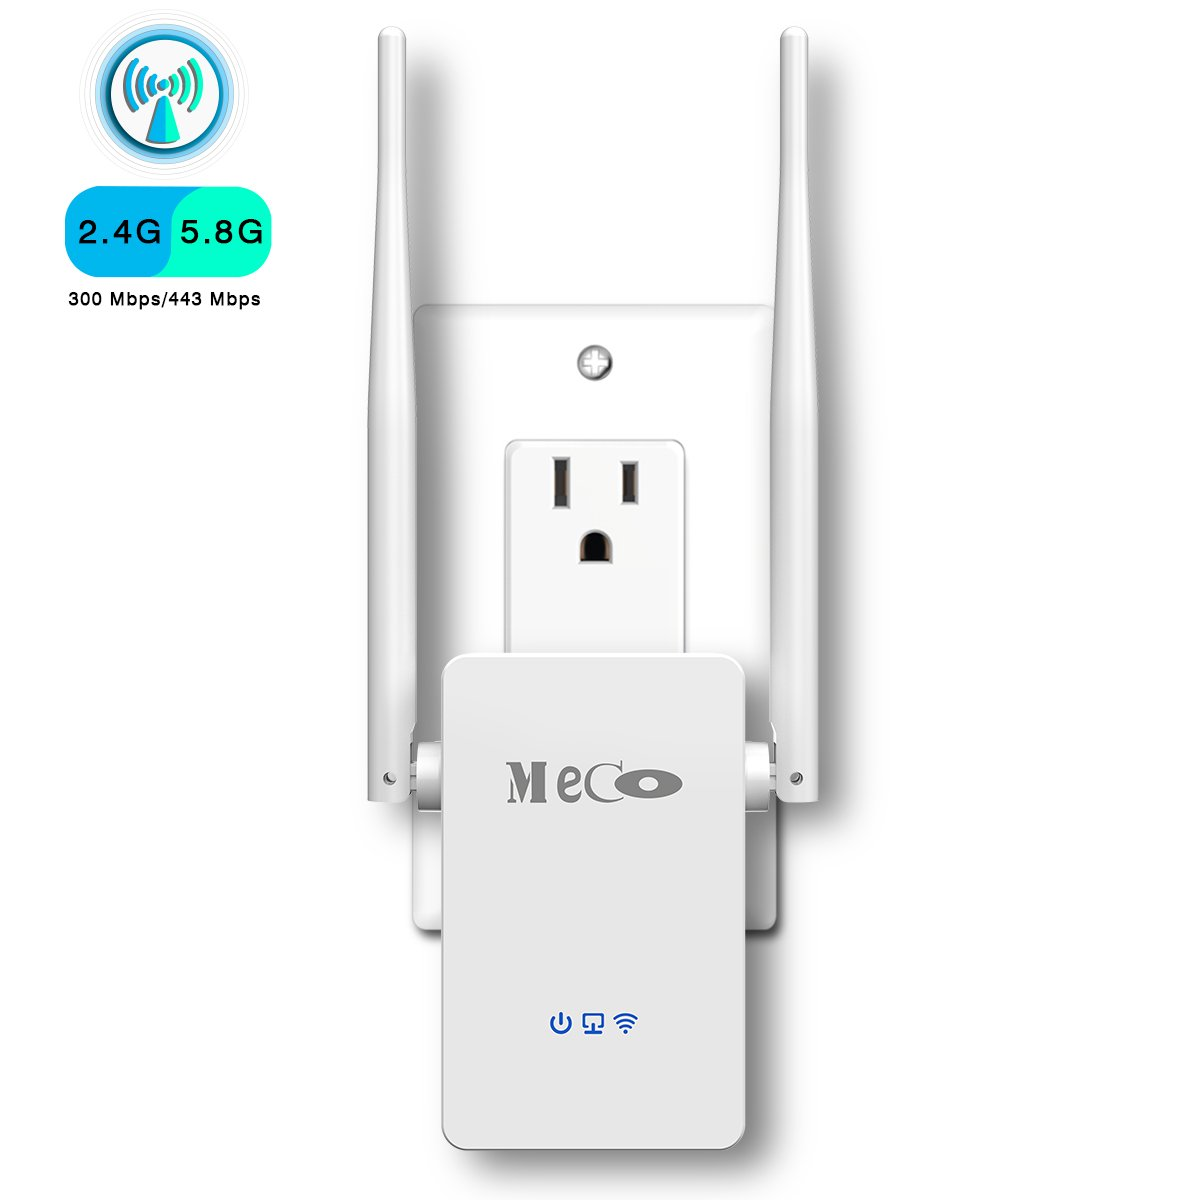 WiFi Range Extender, MECO AC750 WiFi Repeater Dual Band WiFi Signal Booster Amplifier 2.4/5GHz Supports Repeater/ Access Point/ Router Mode Easily Setup with Ethernet Port , Extends WiFi to Smart Home